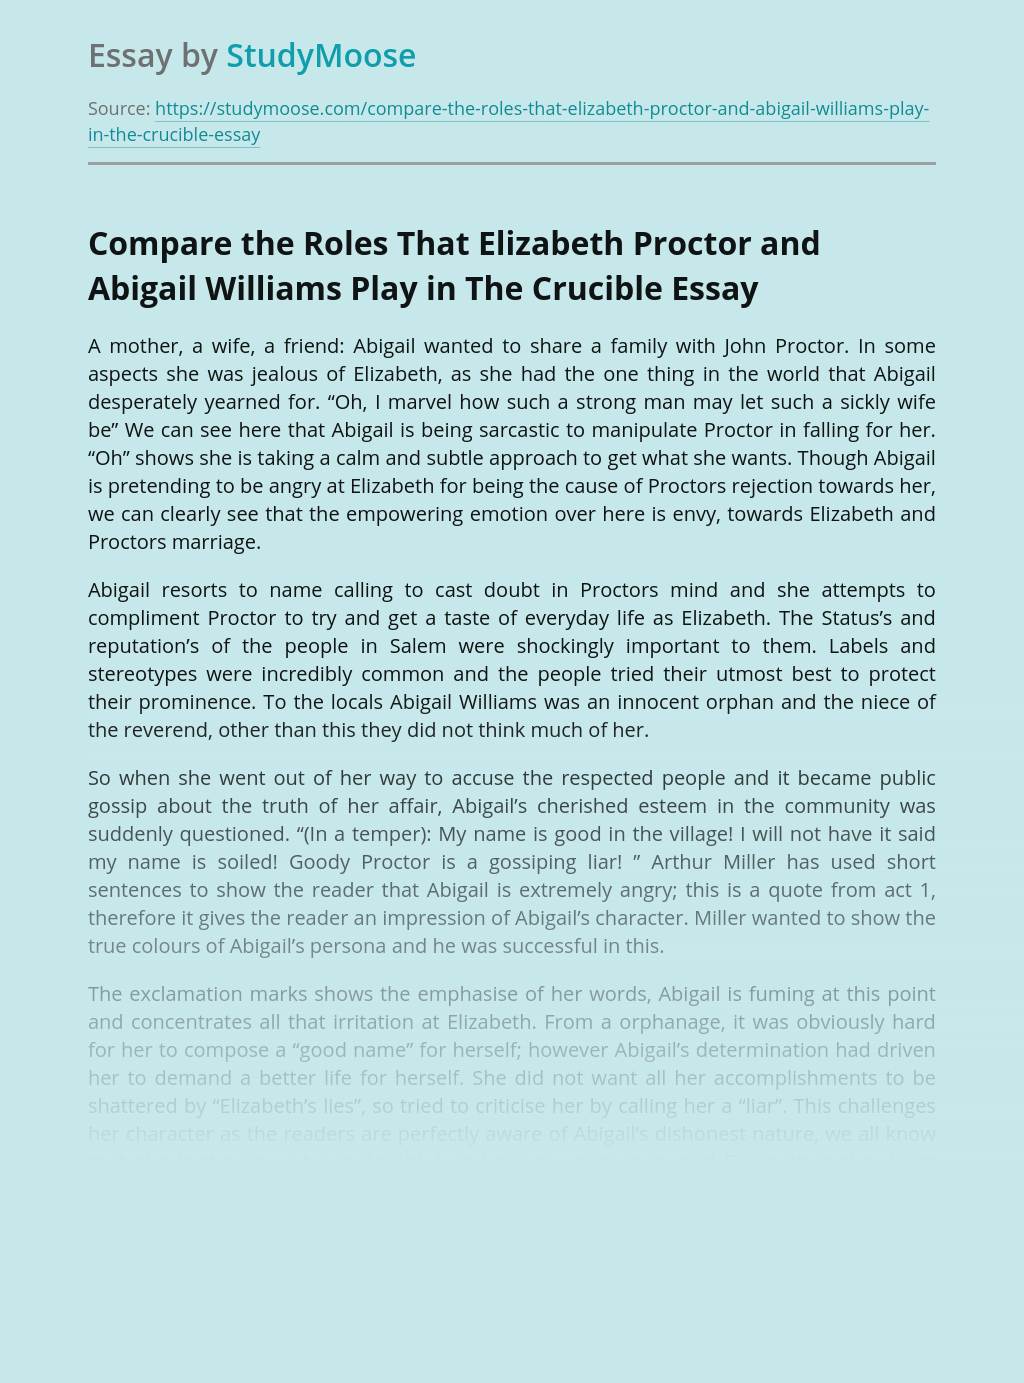 Compare the Roles That Elizabeth Proctor and Abigail Williams Play in The Crucible